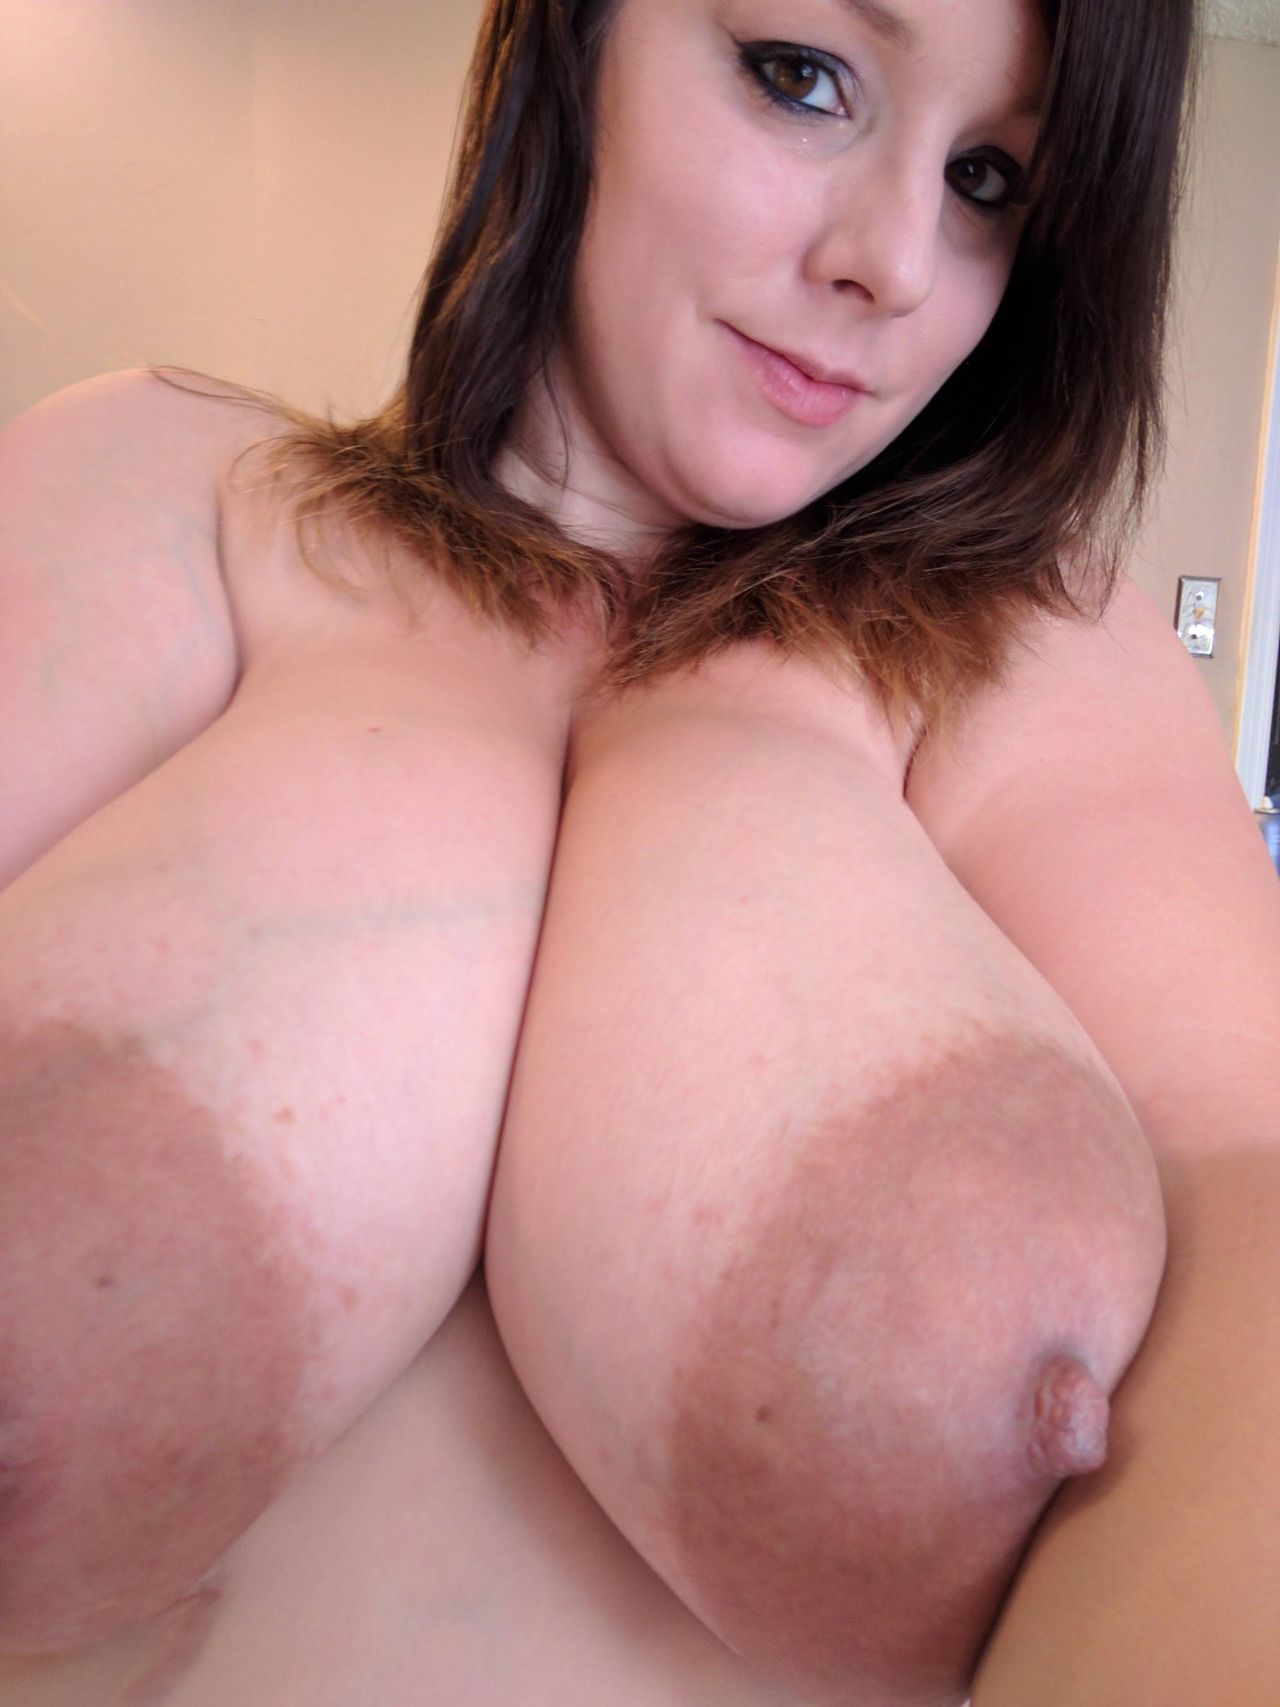 Girls With Big Areolas